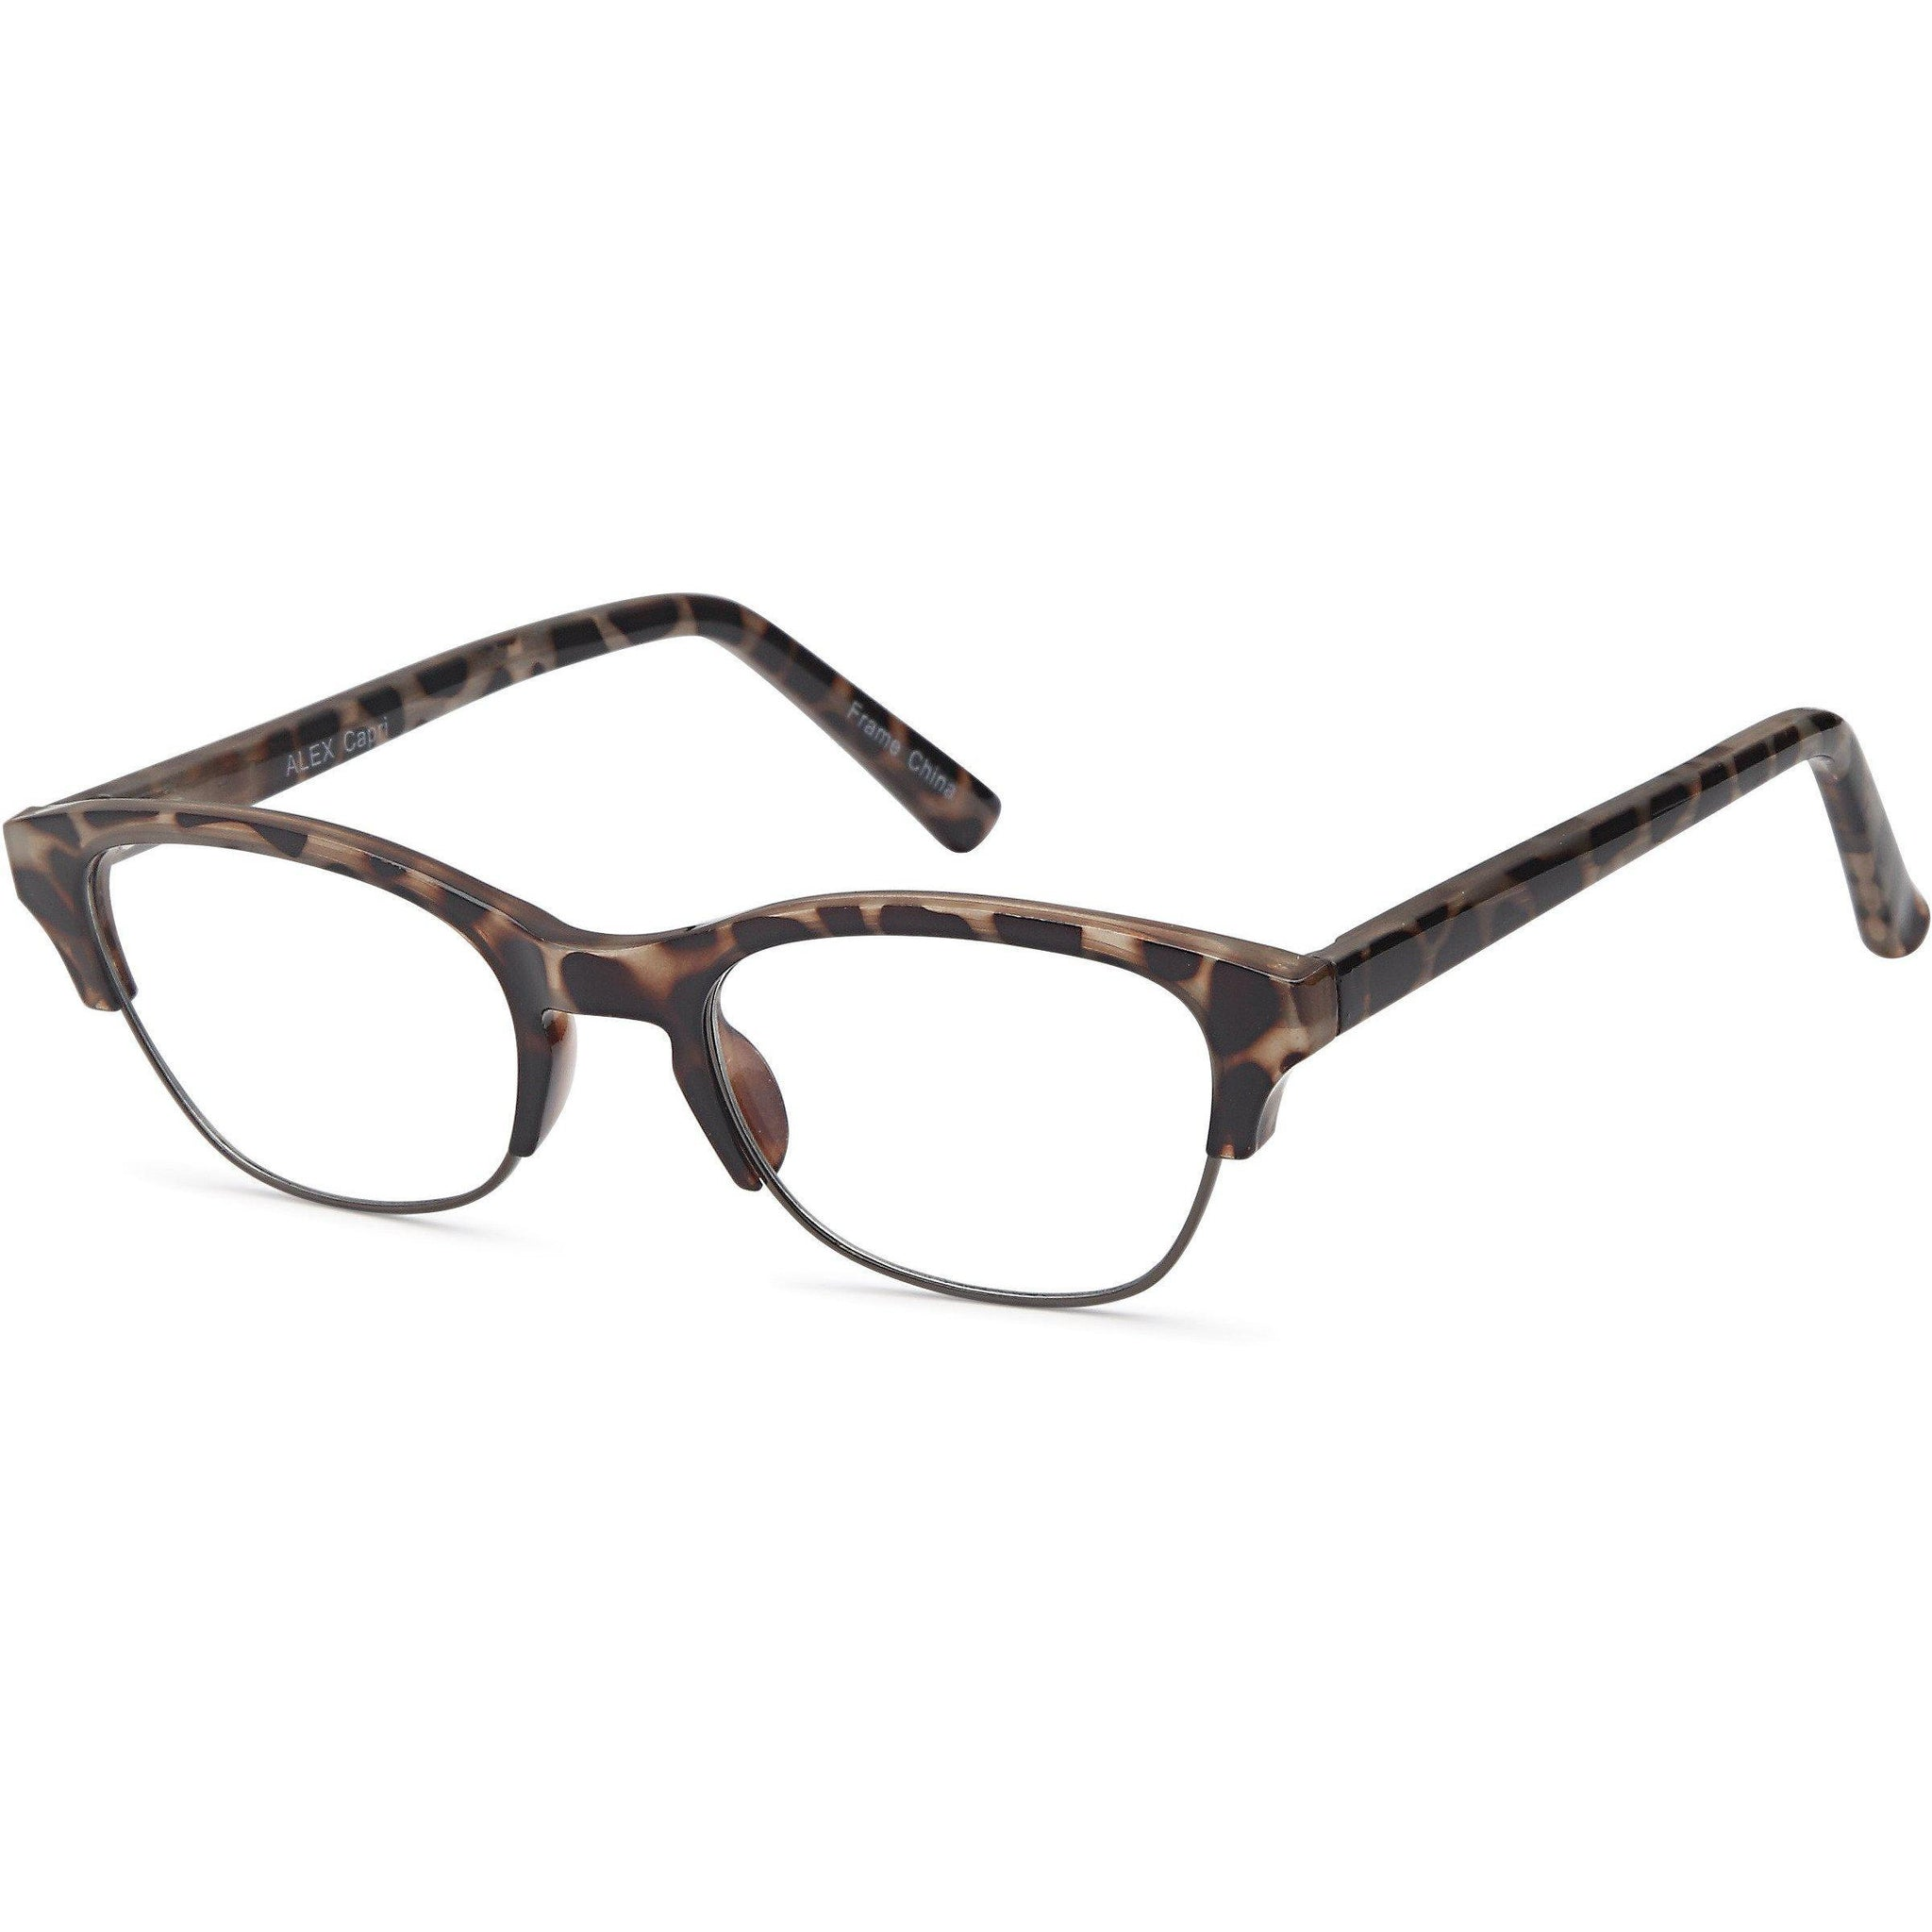 The Icons Prescription Glasses ALEX Eyeglasses Frame